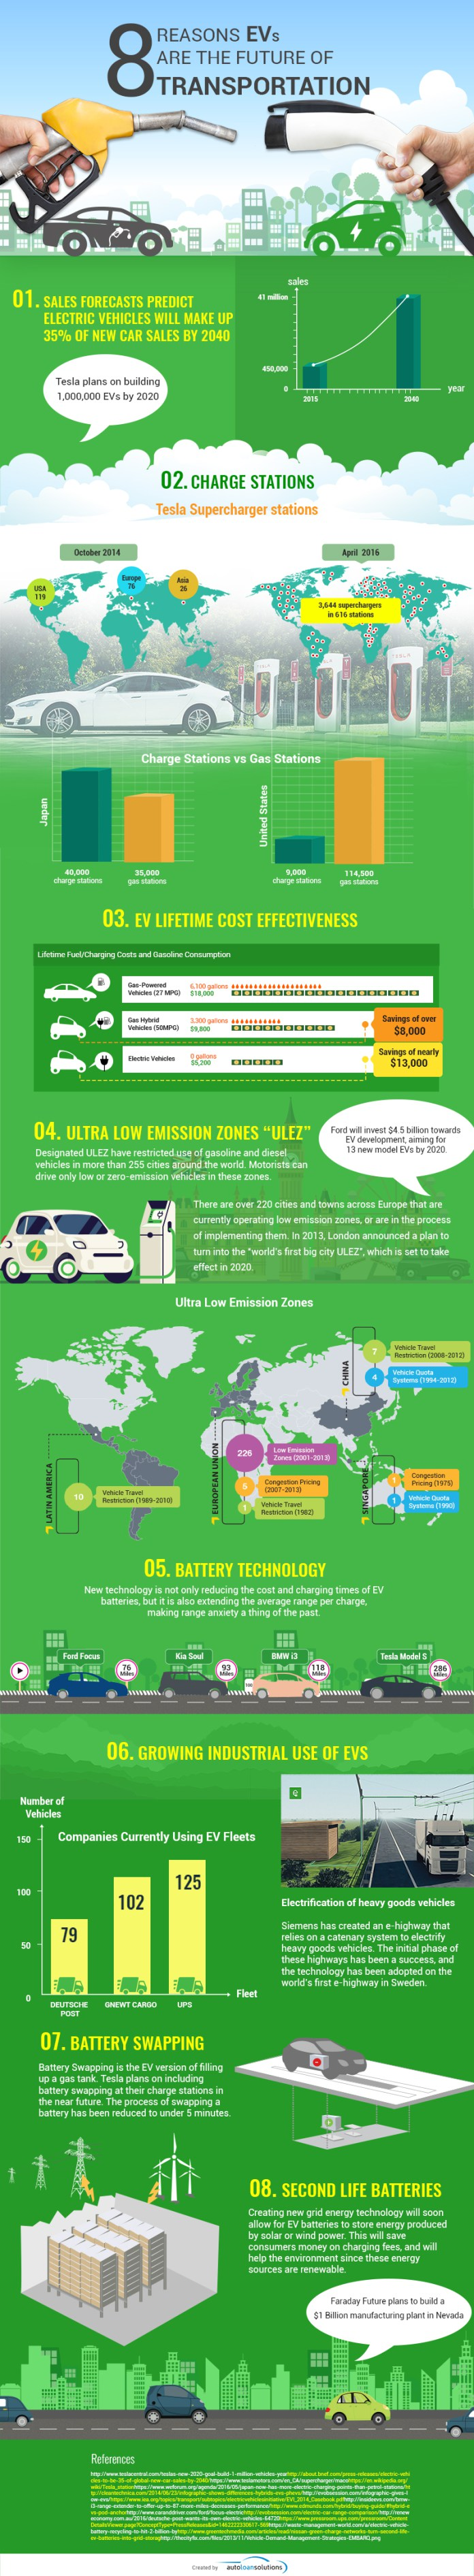 electric-vehicles-are-the-future-2.jpg